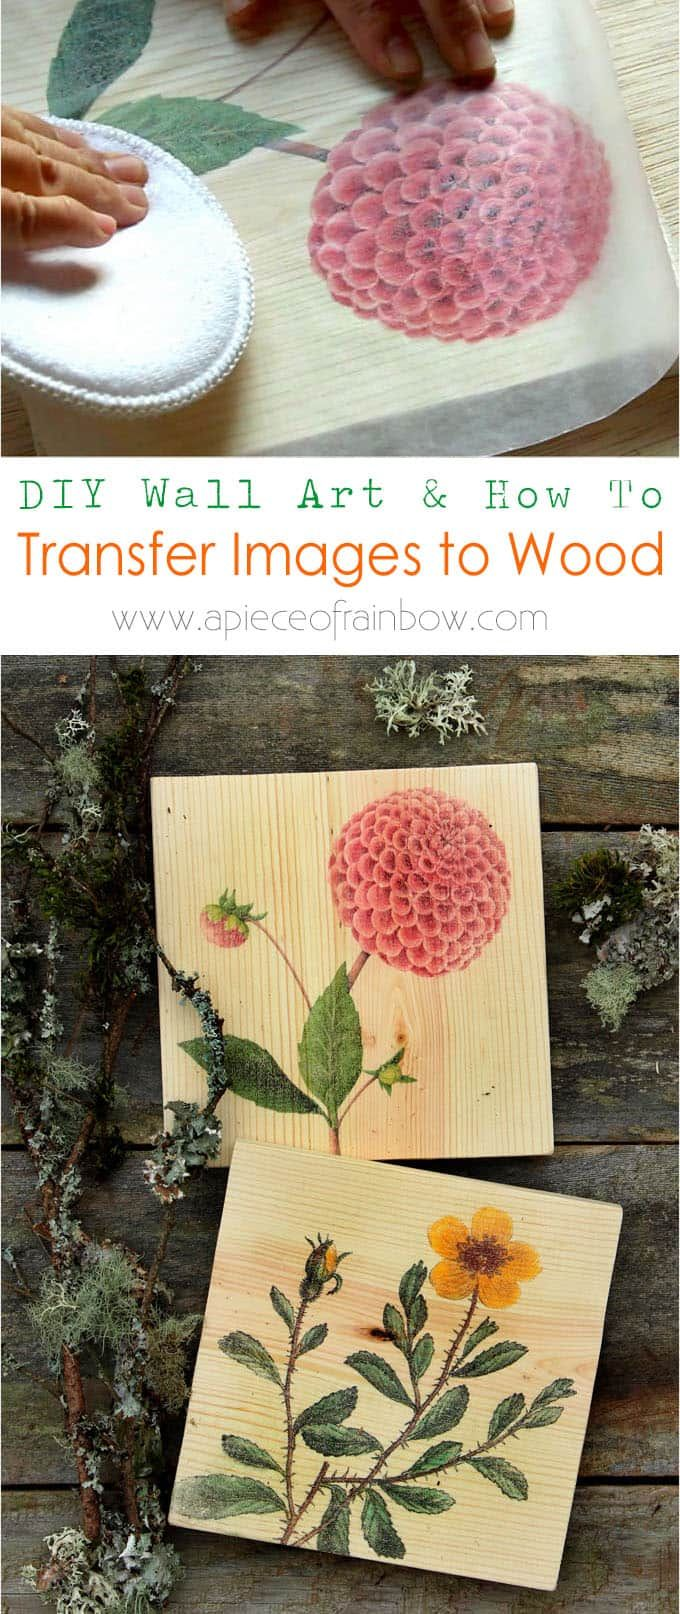 DIY Wall Art & How to Transfer Image to Wood | Wood wall art, Wood ...